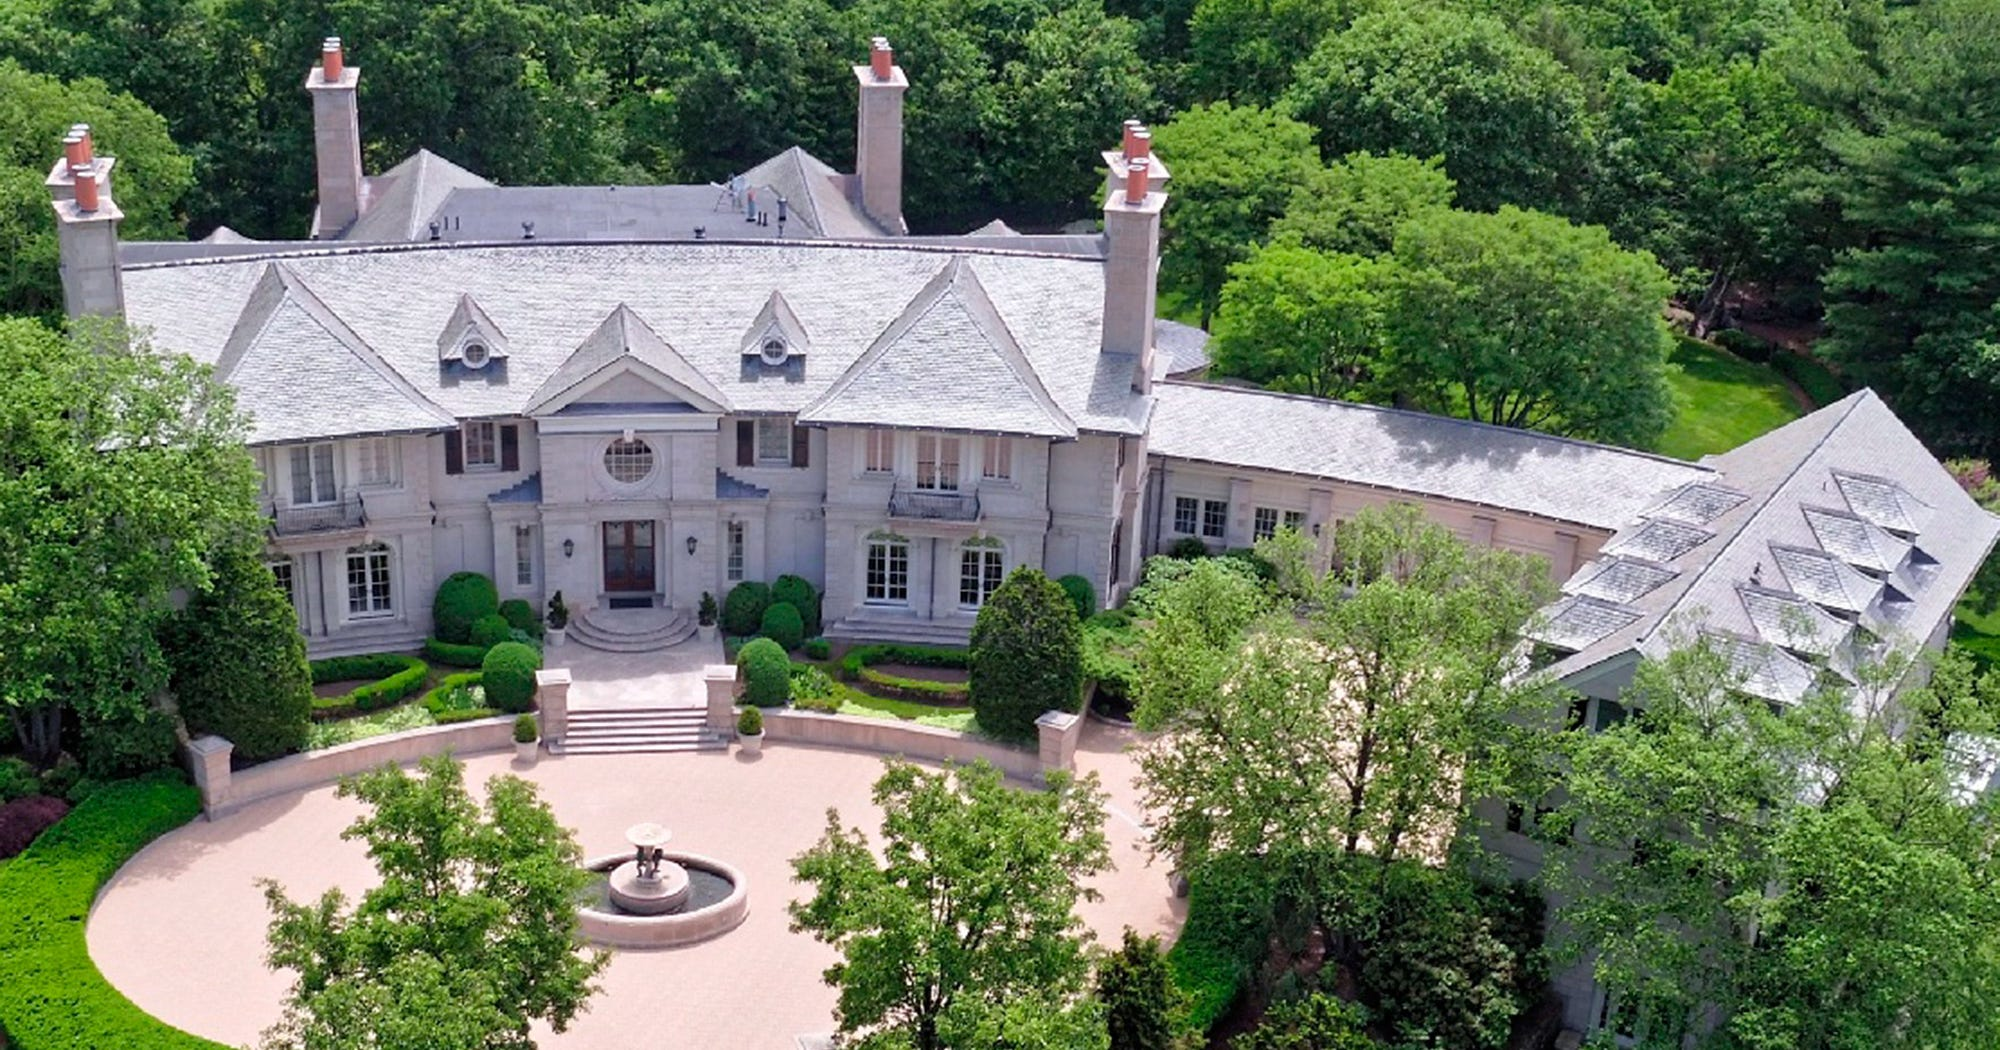 Most expensive homes in the us for sale on trulia for Most expensive house in us